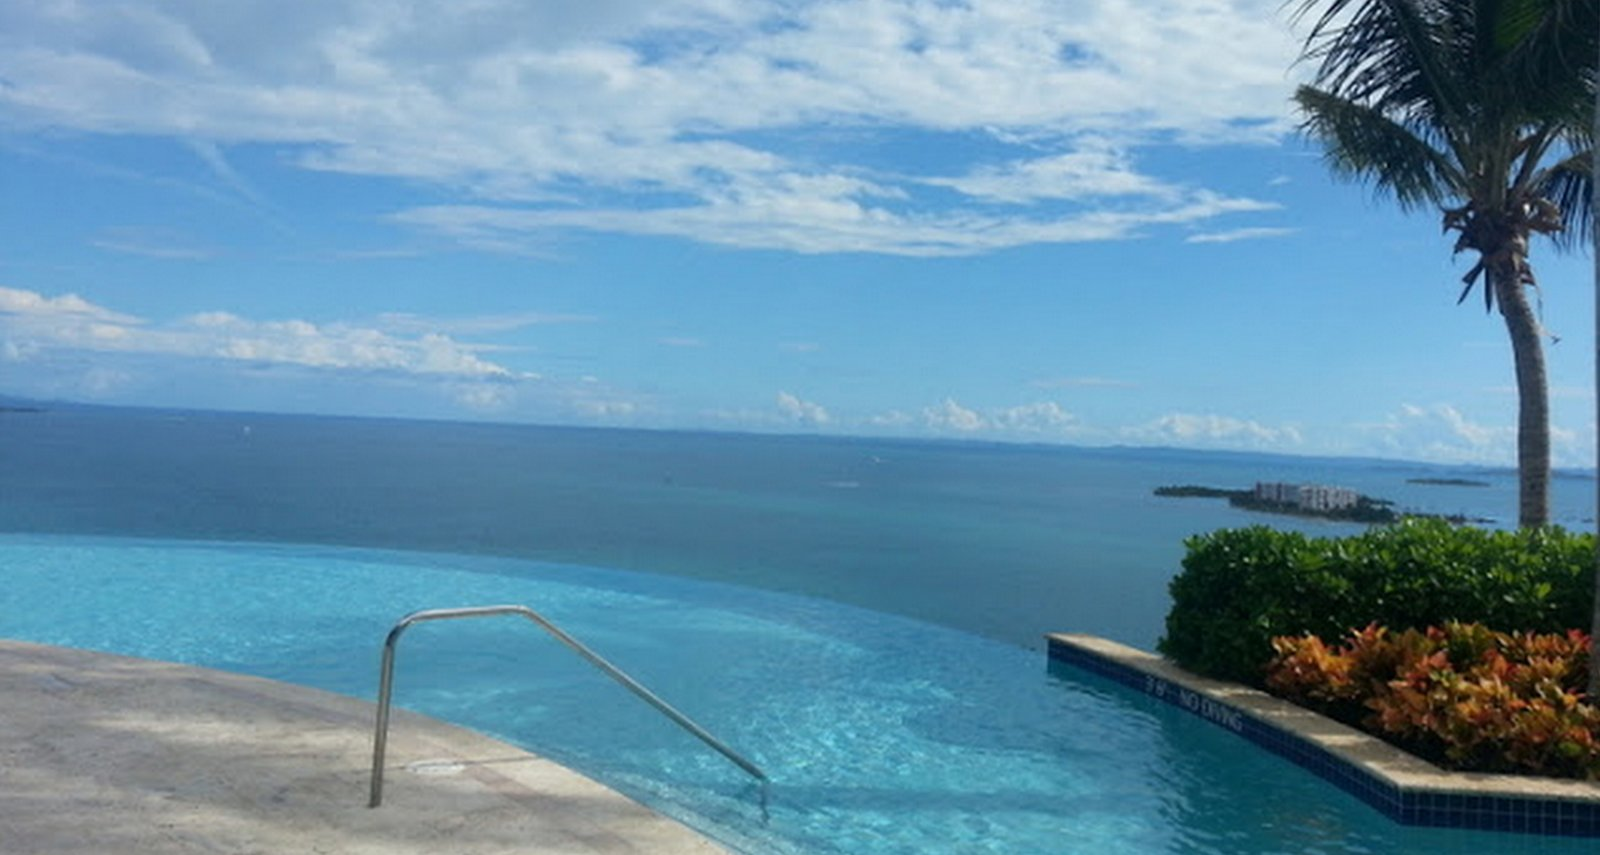 The Golden Door Spa in Puerto Rico: The ultimate retreat to immerse yourself in health and wellness